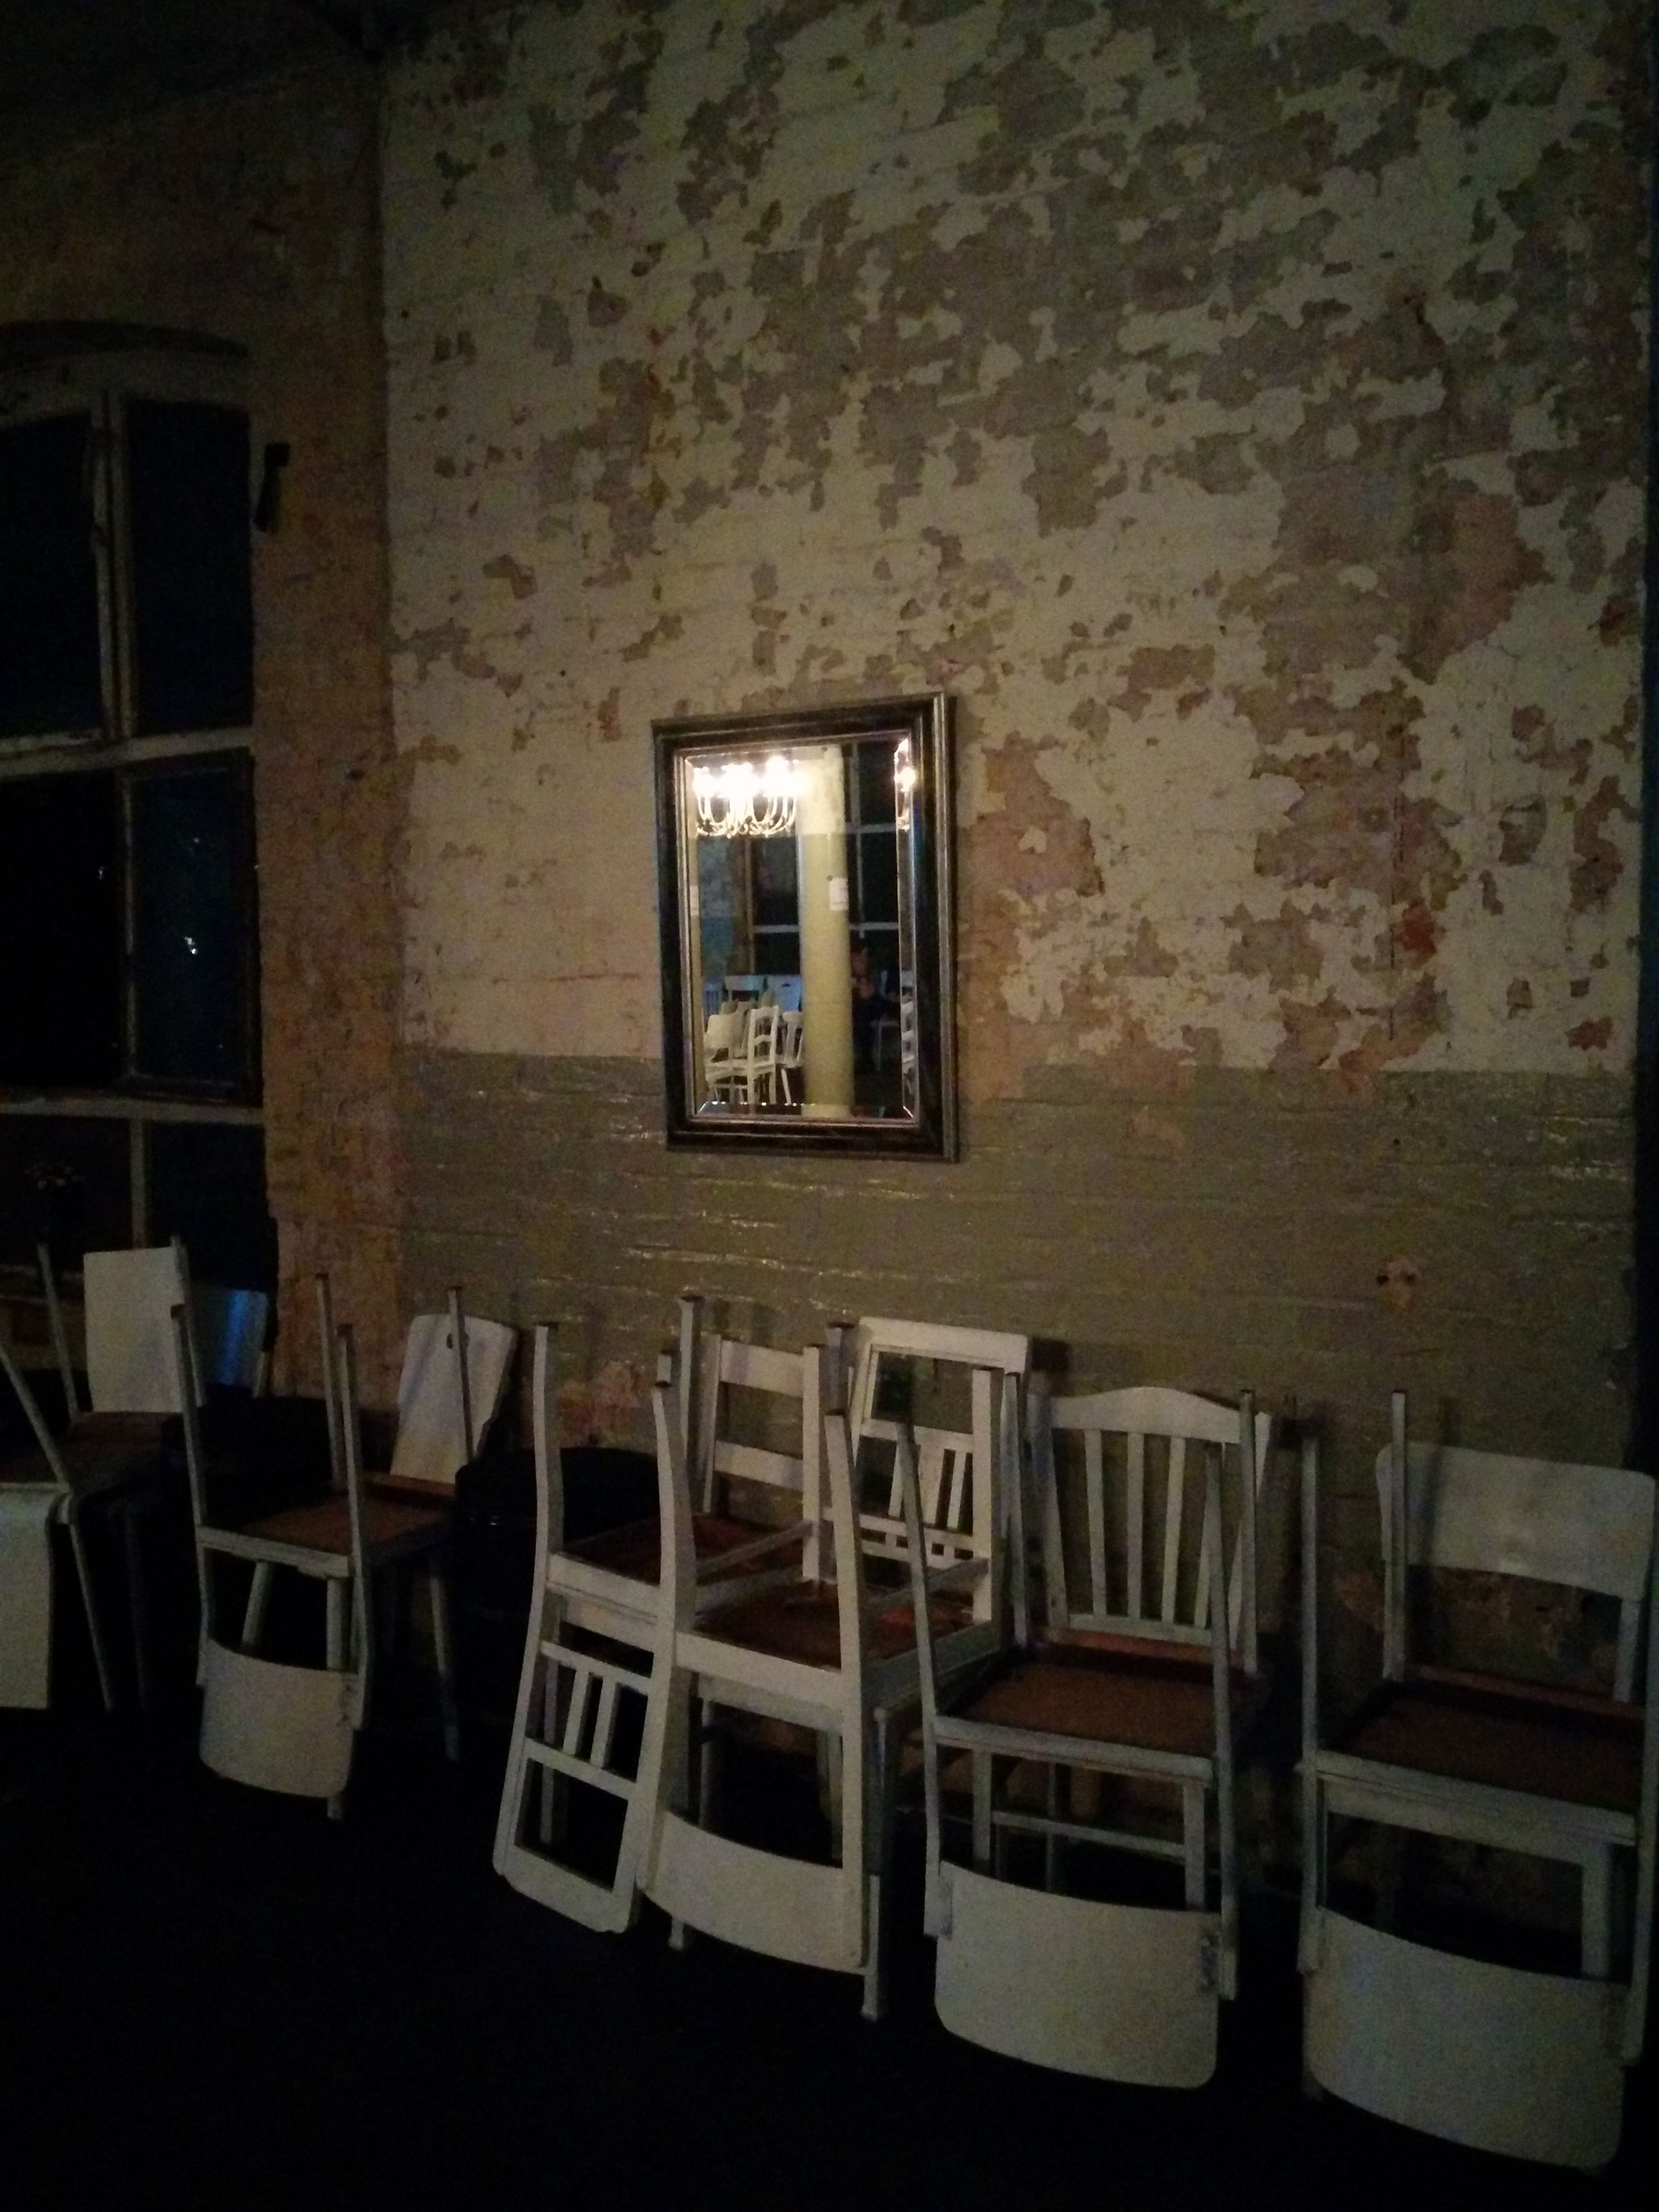 indoors, window, architecture, built structure, chair, absence, empty, wall - building feature, house, wall, abandoned, home interior, room, old, no people, table, interior, day, door, domestic room